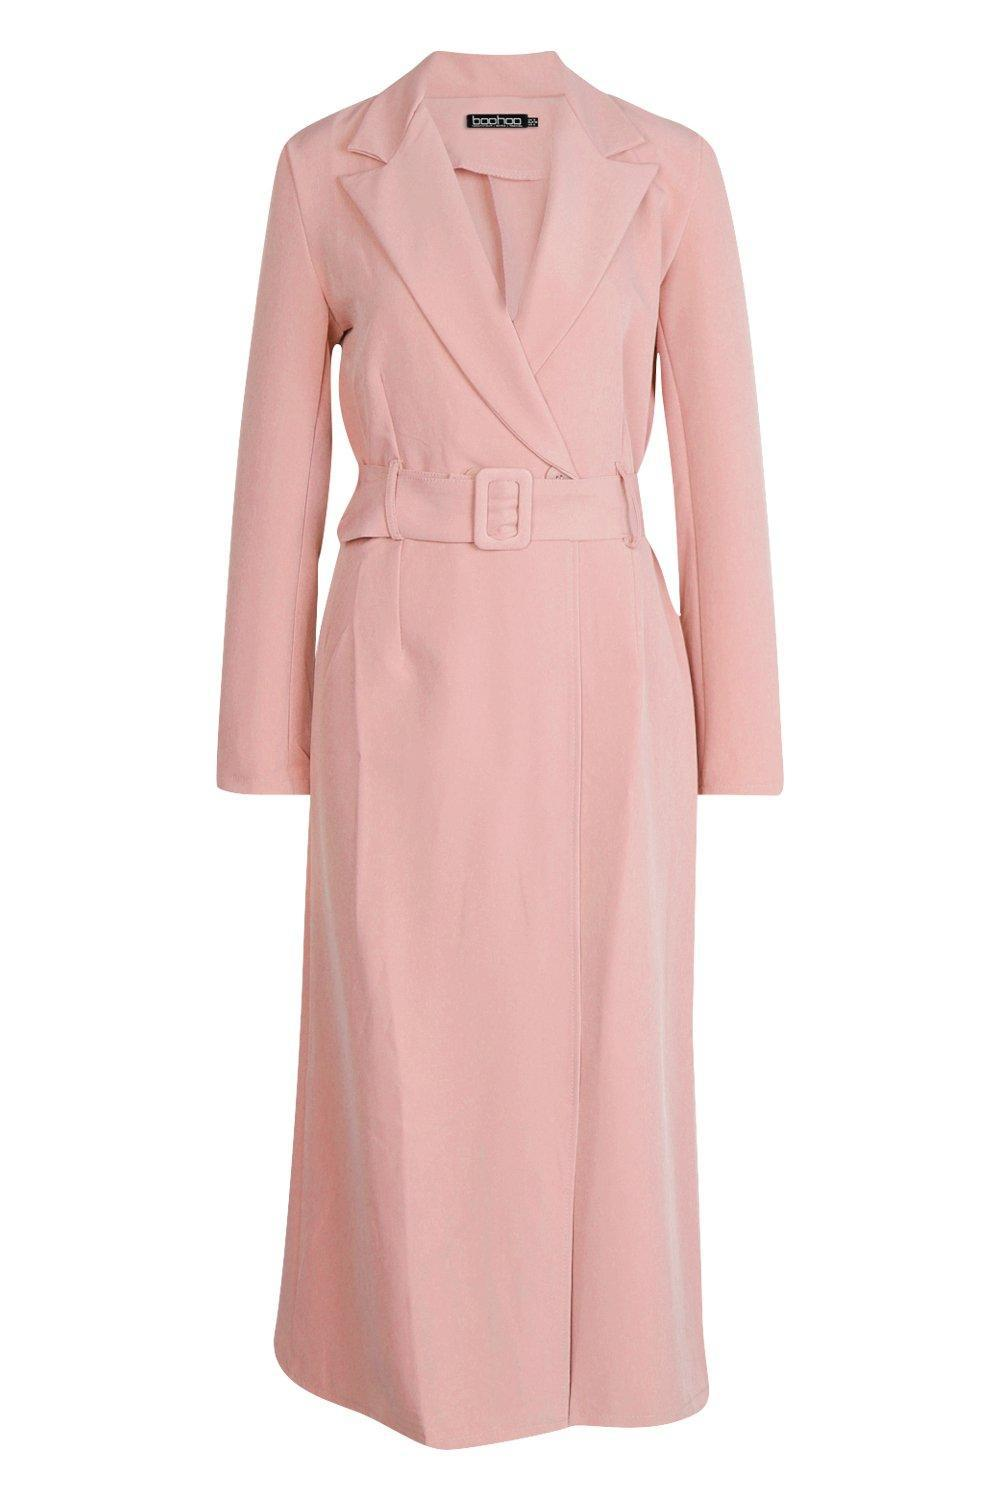 5762767f2c6 Lyst - Boohoo Covered Belt Maxi Blazer Dress in Pink